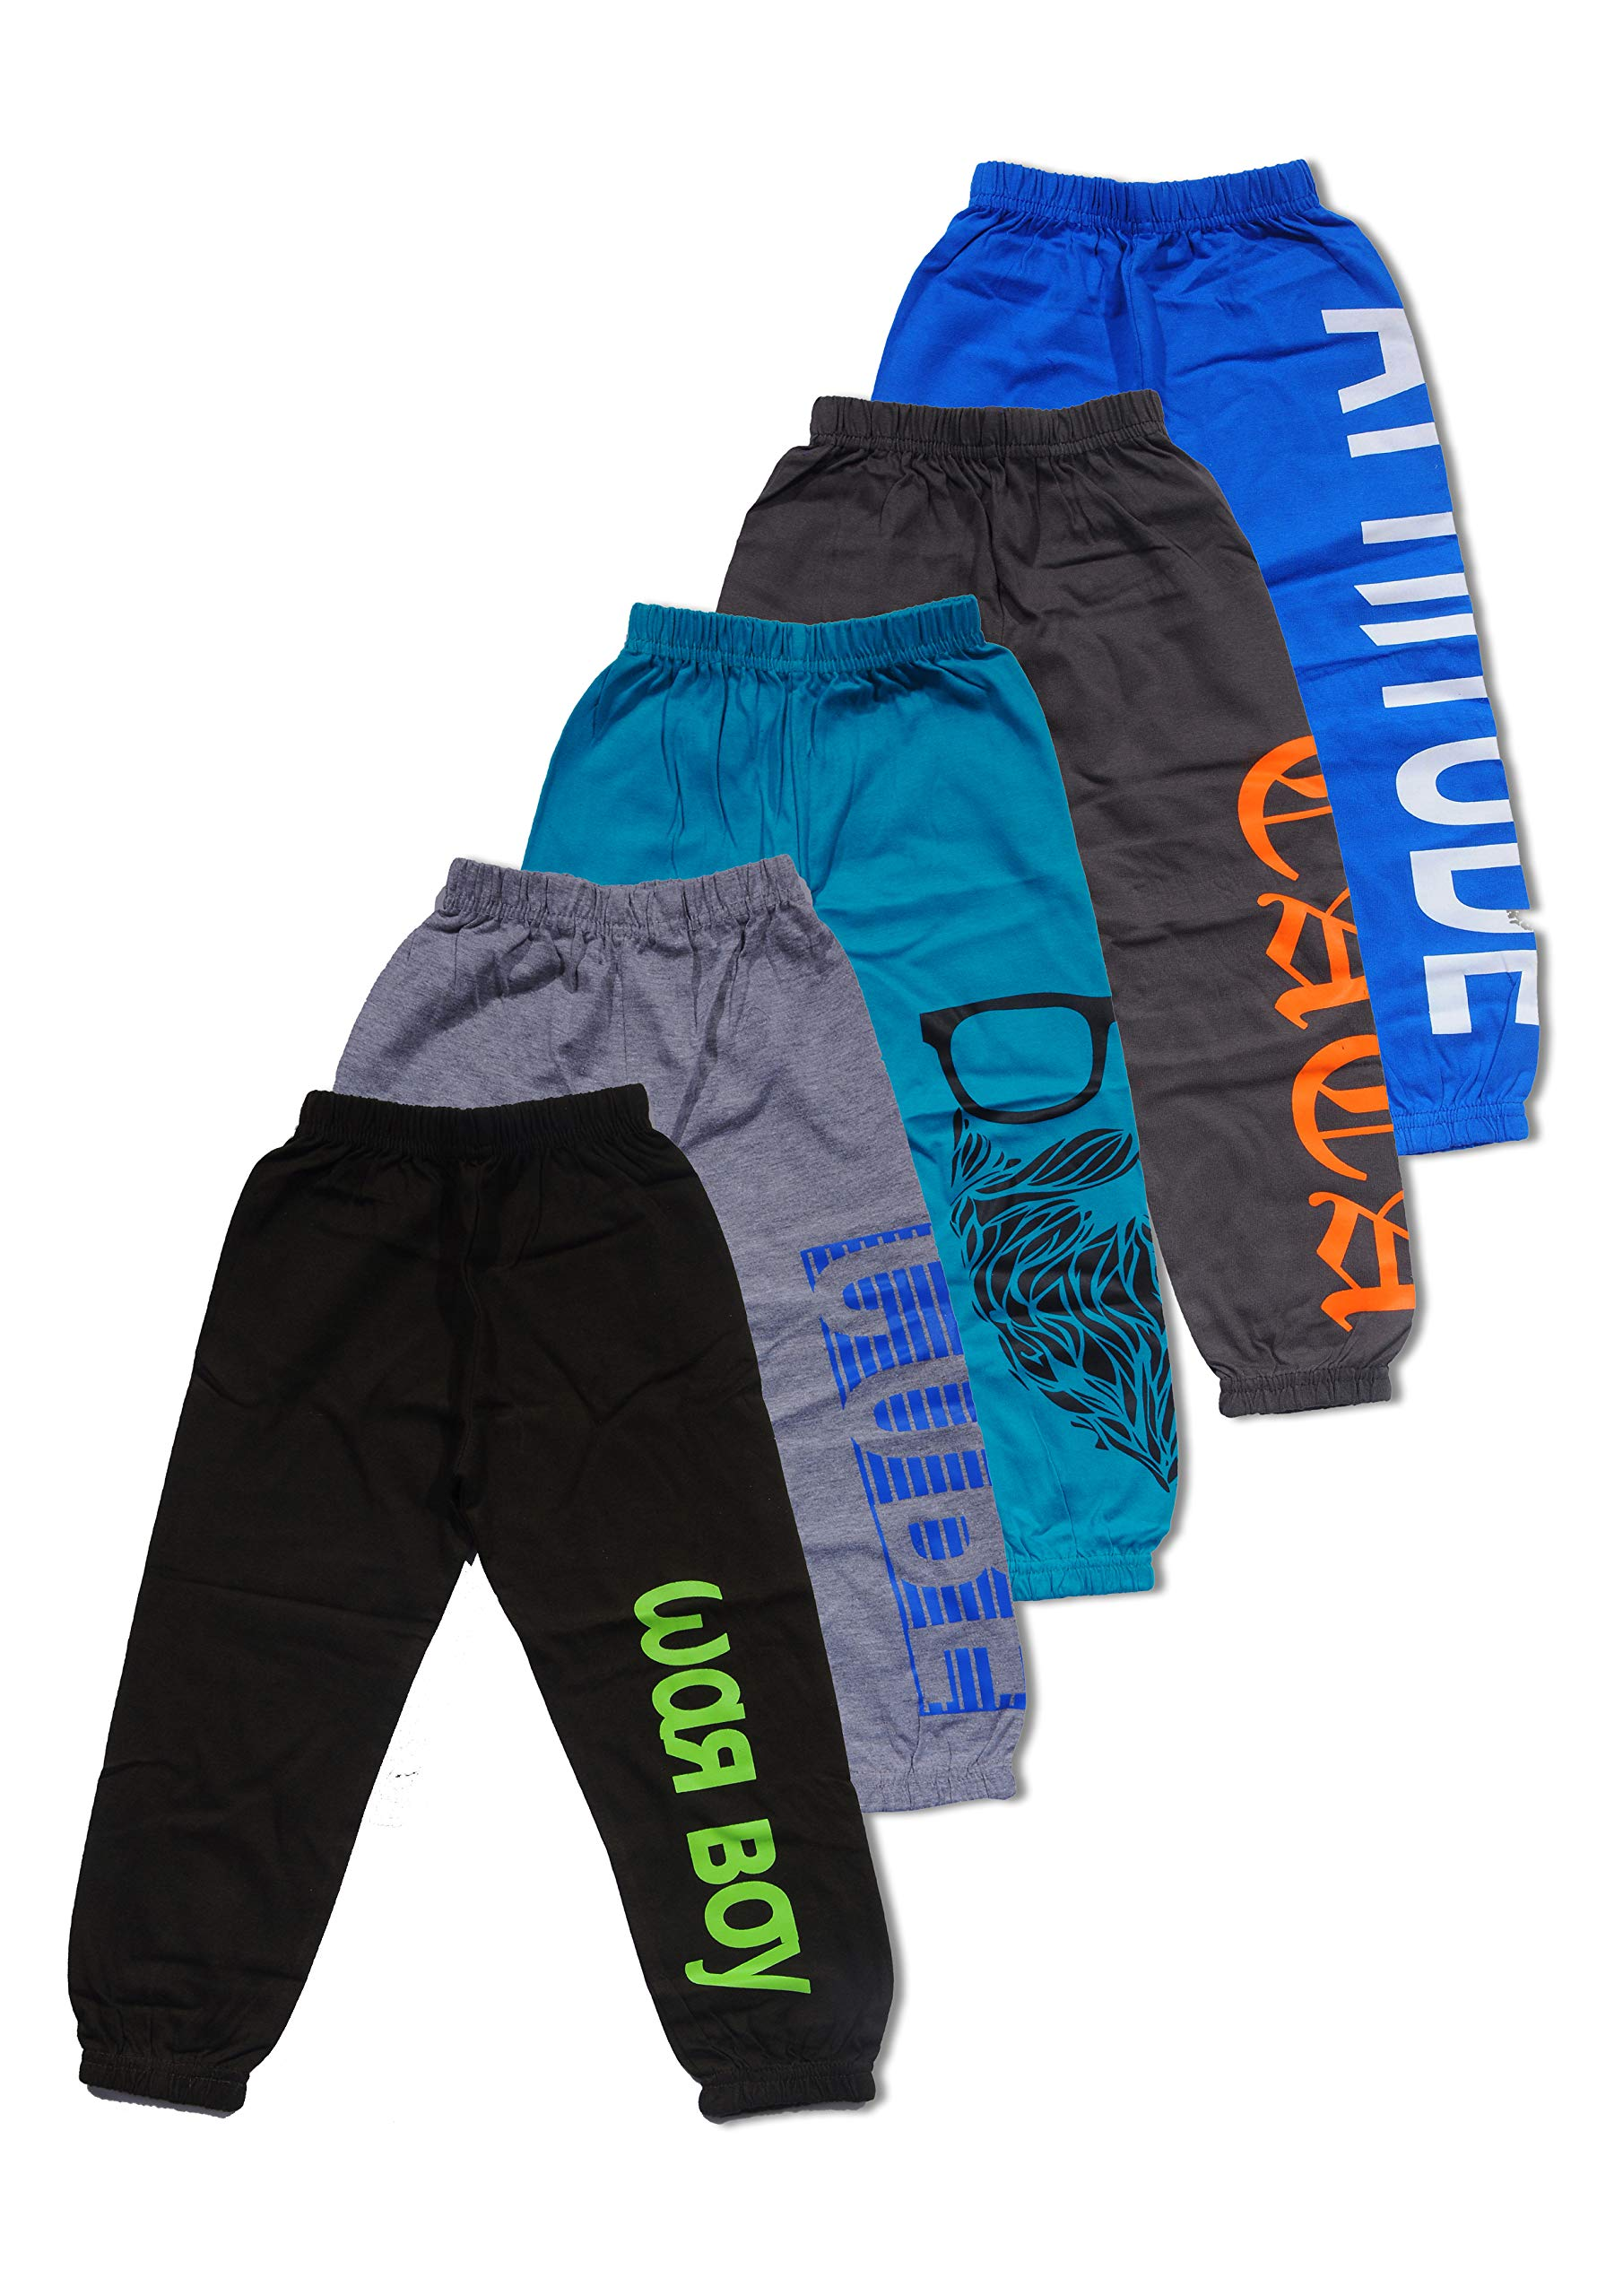 T2F Boys' Printed Track Pants (Pack of 5, Multicolor) product image